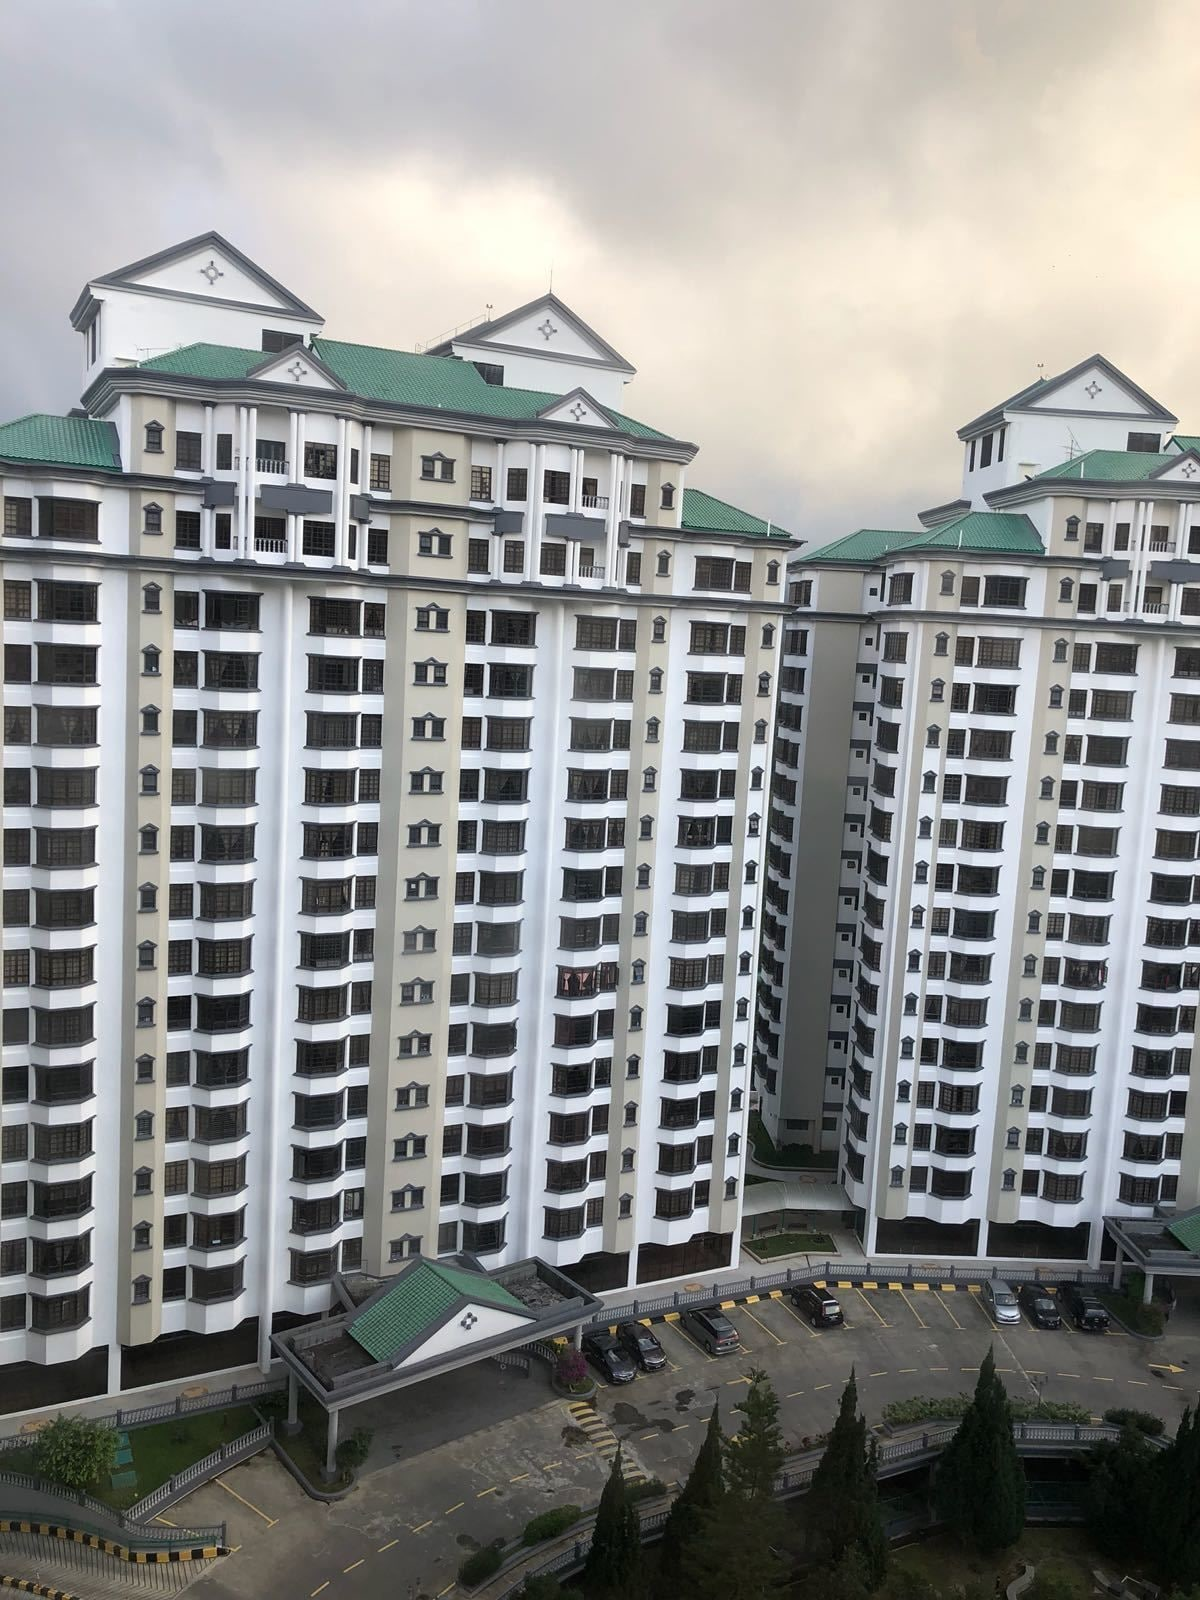 8 Pax Mawar Apartments Genting Highlands, Bentong